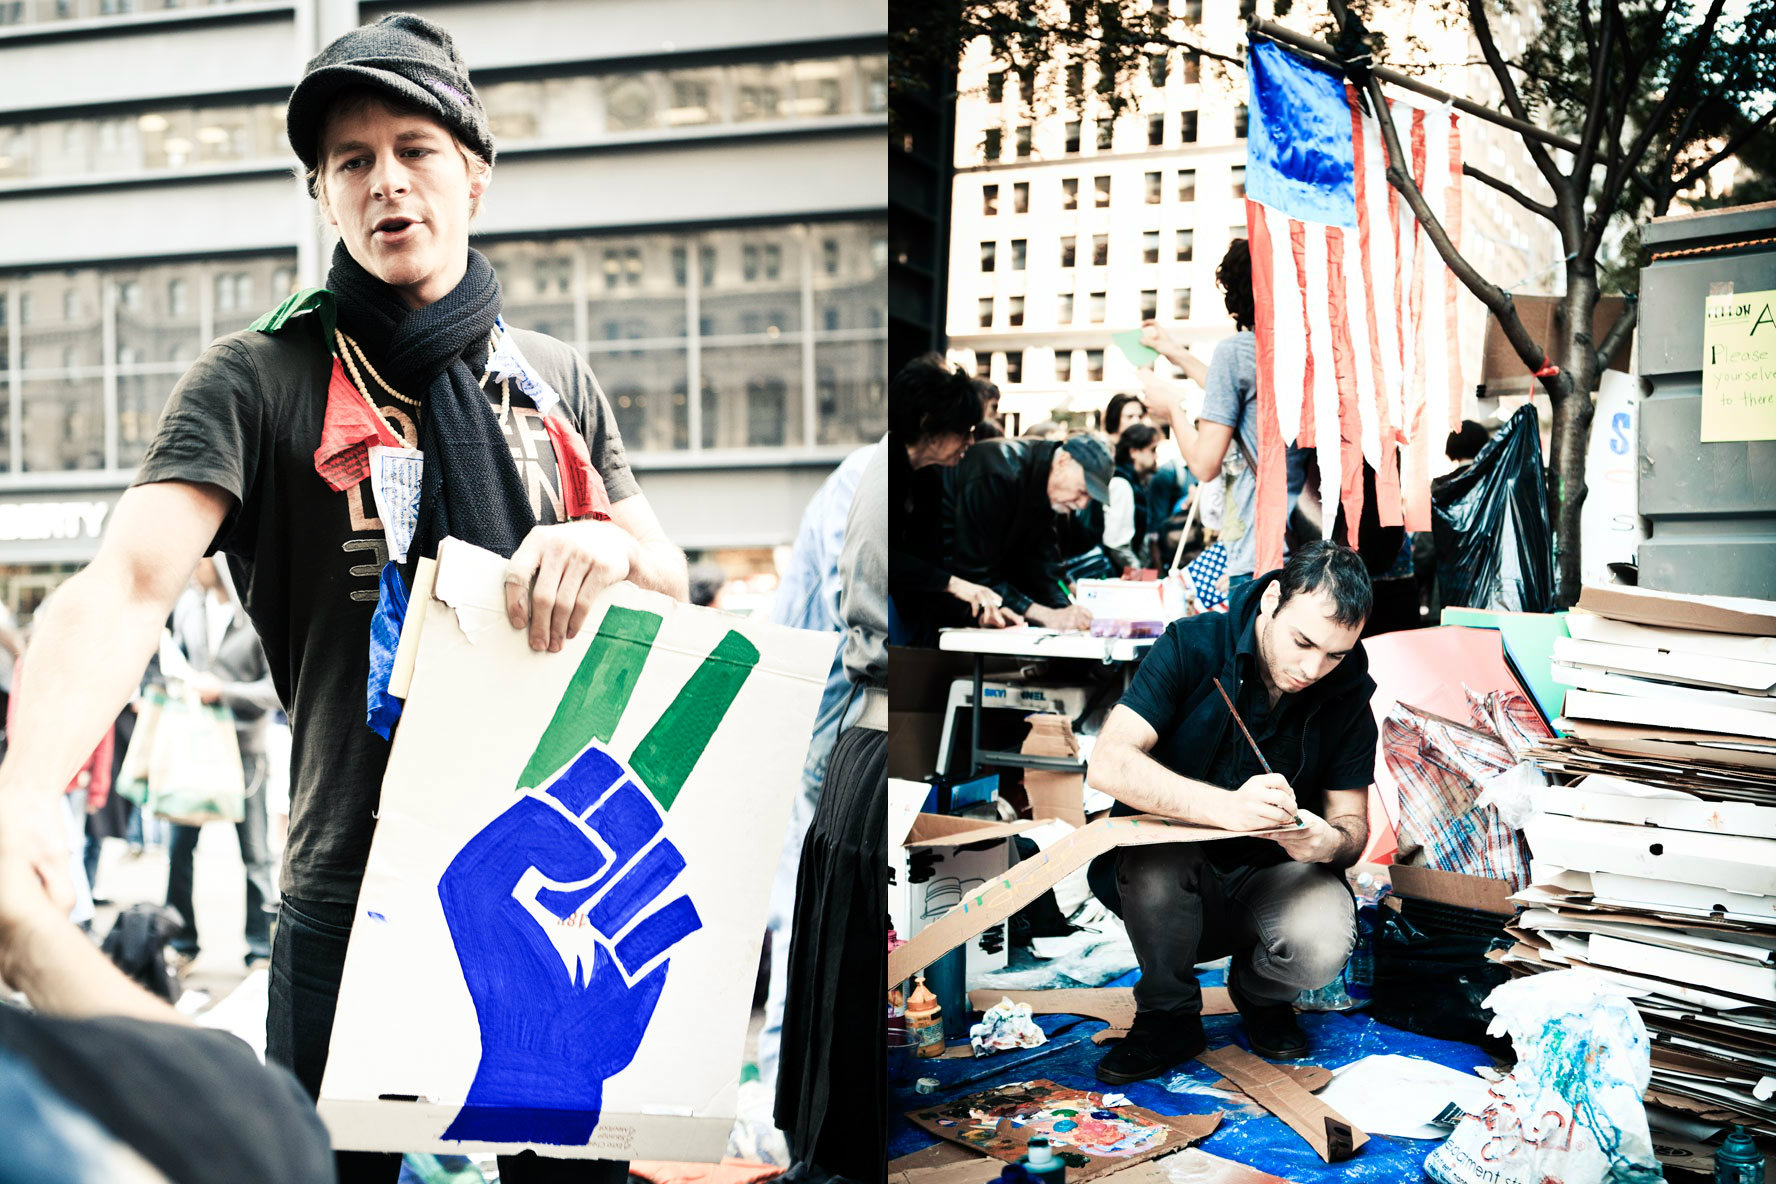 occupy_spread_07.jpg